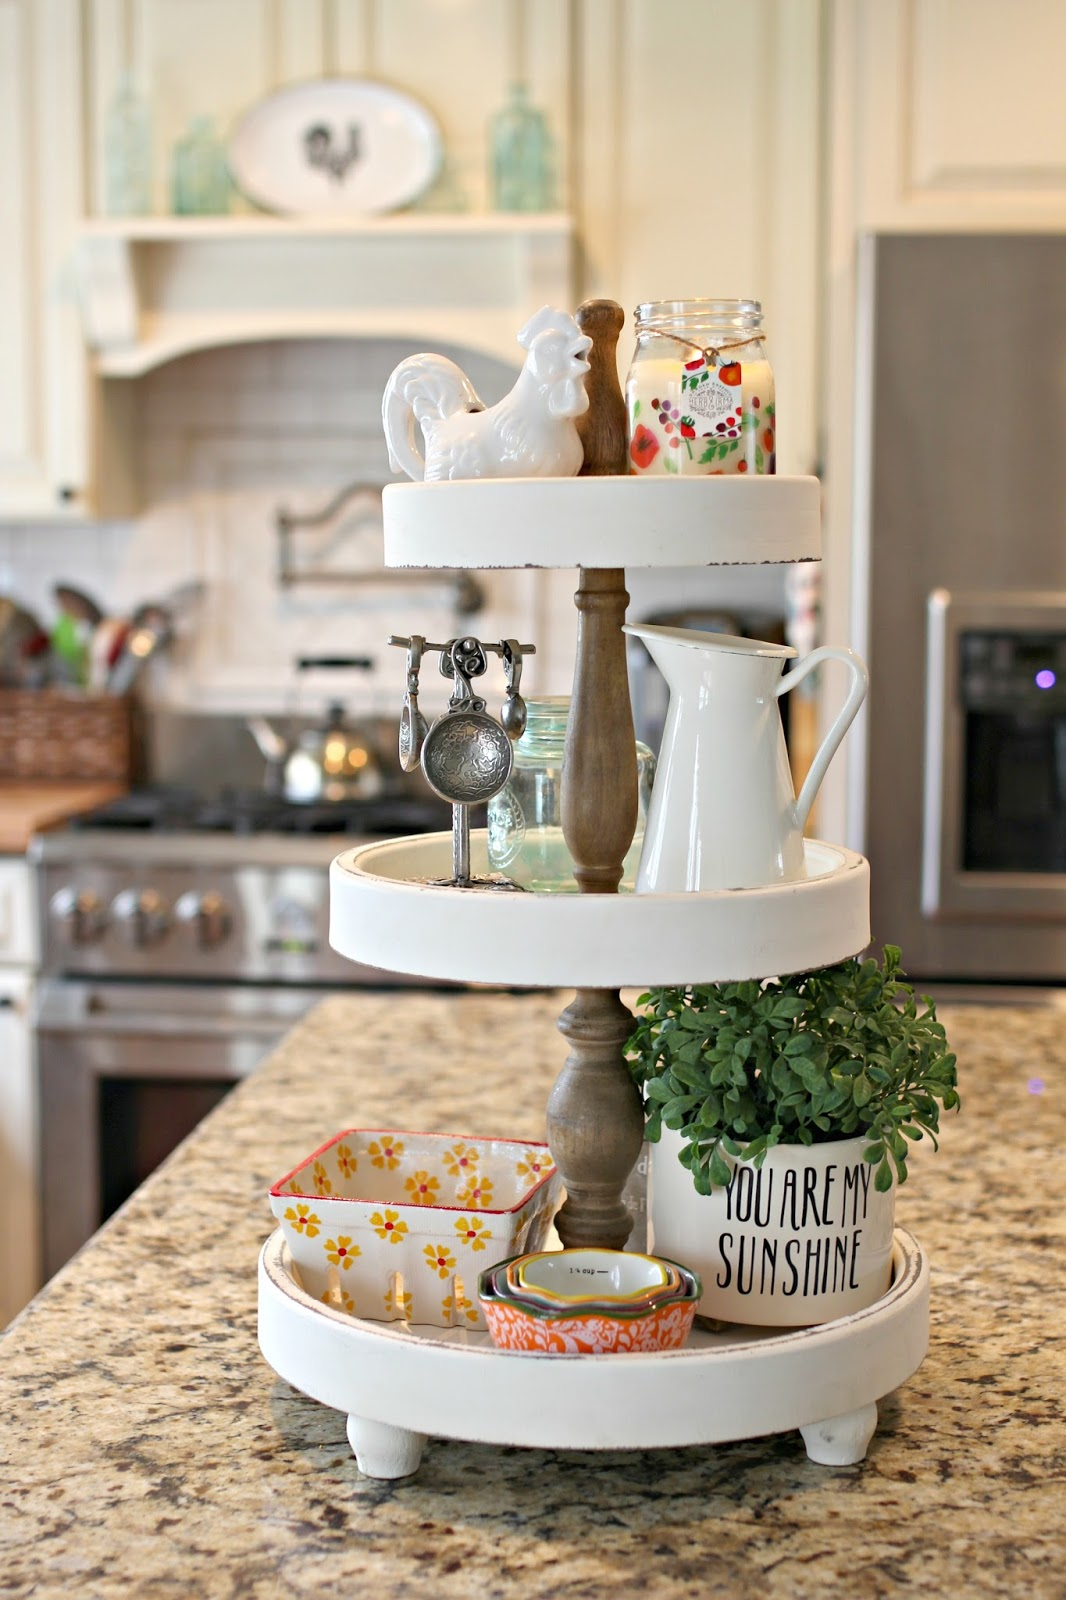 3 Tiered Kitchen Stand From Homegoods On Island More Ideas For Stands In